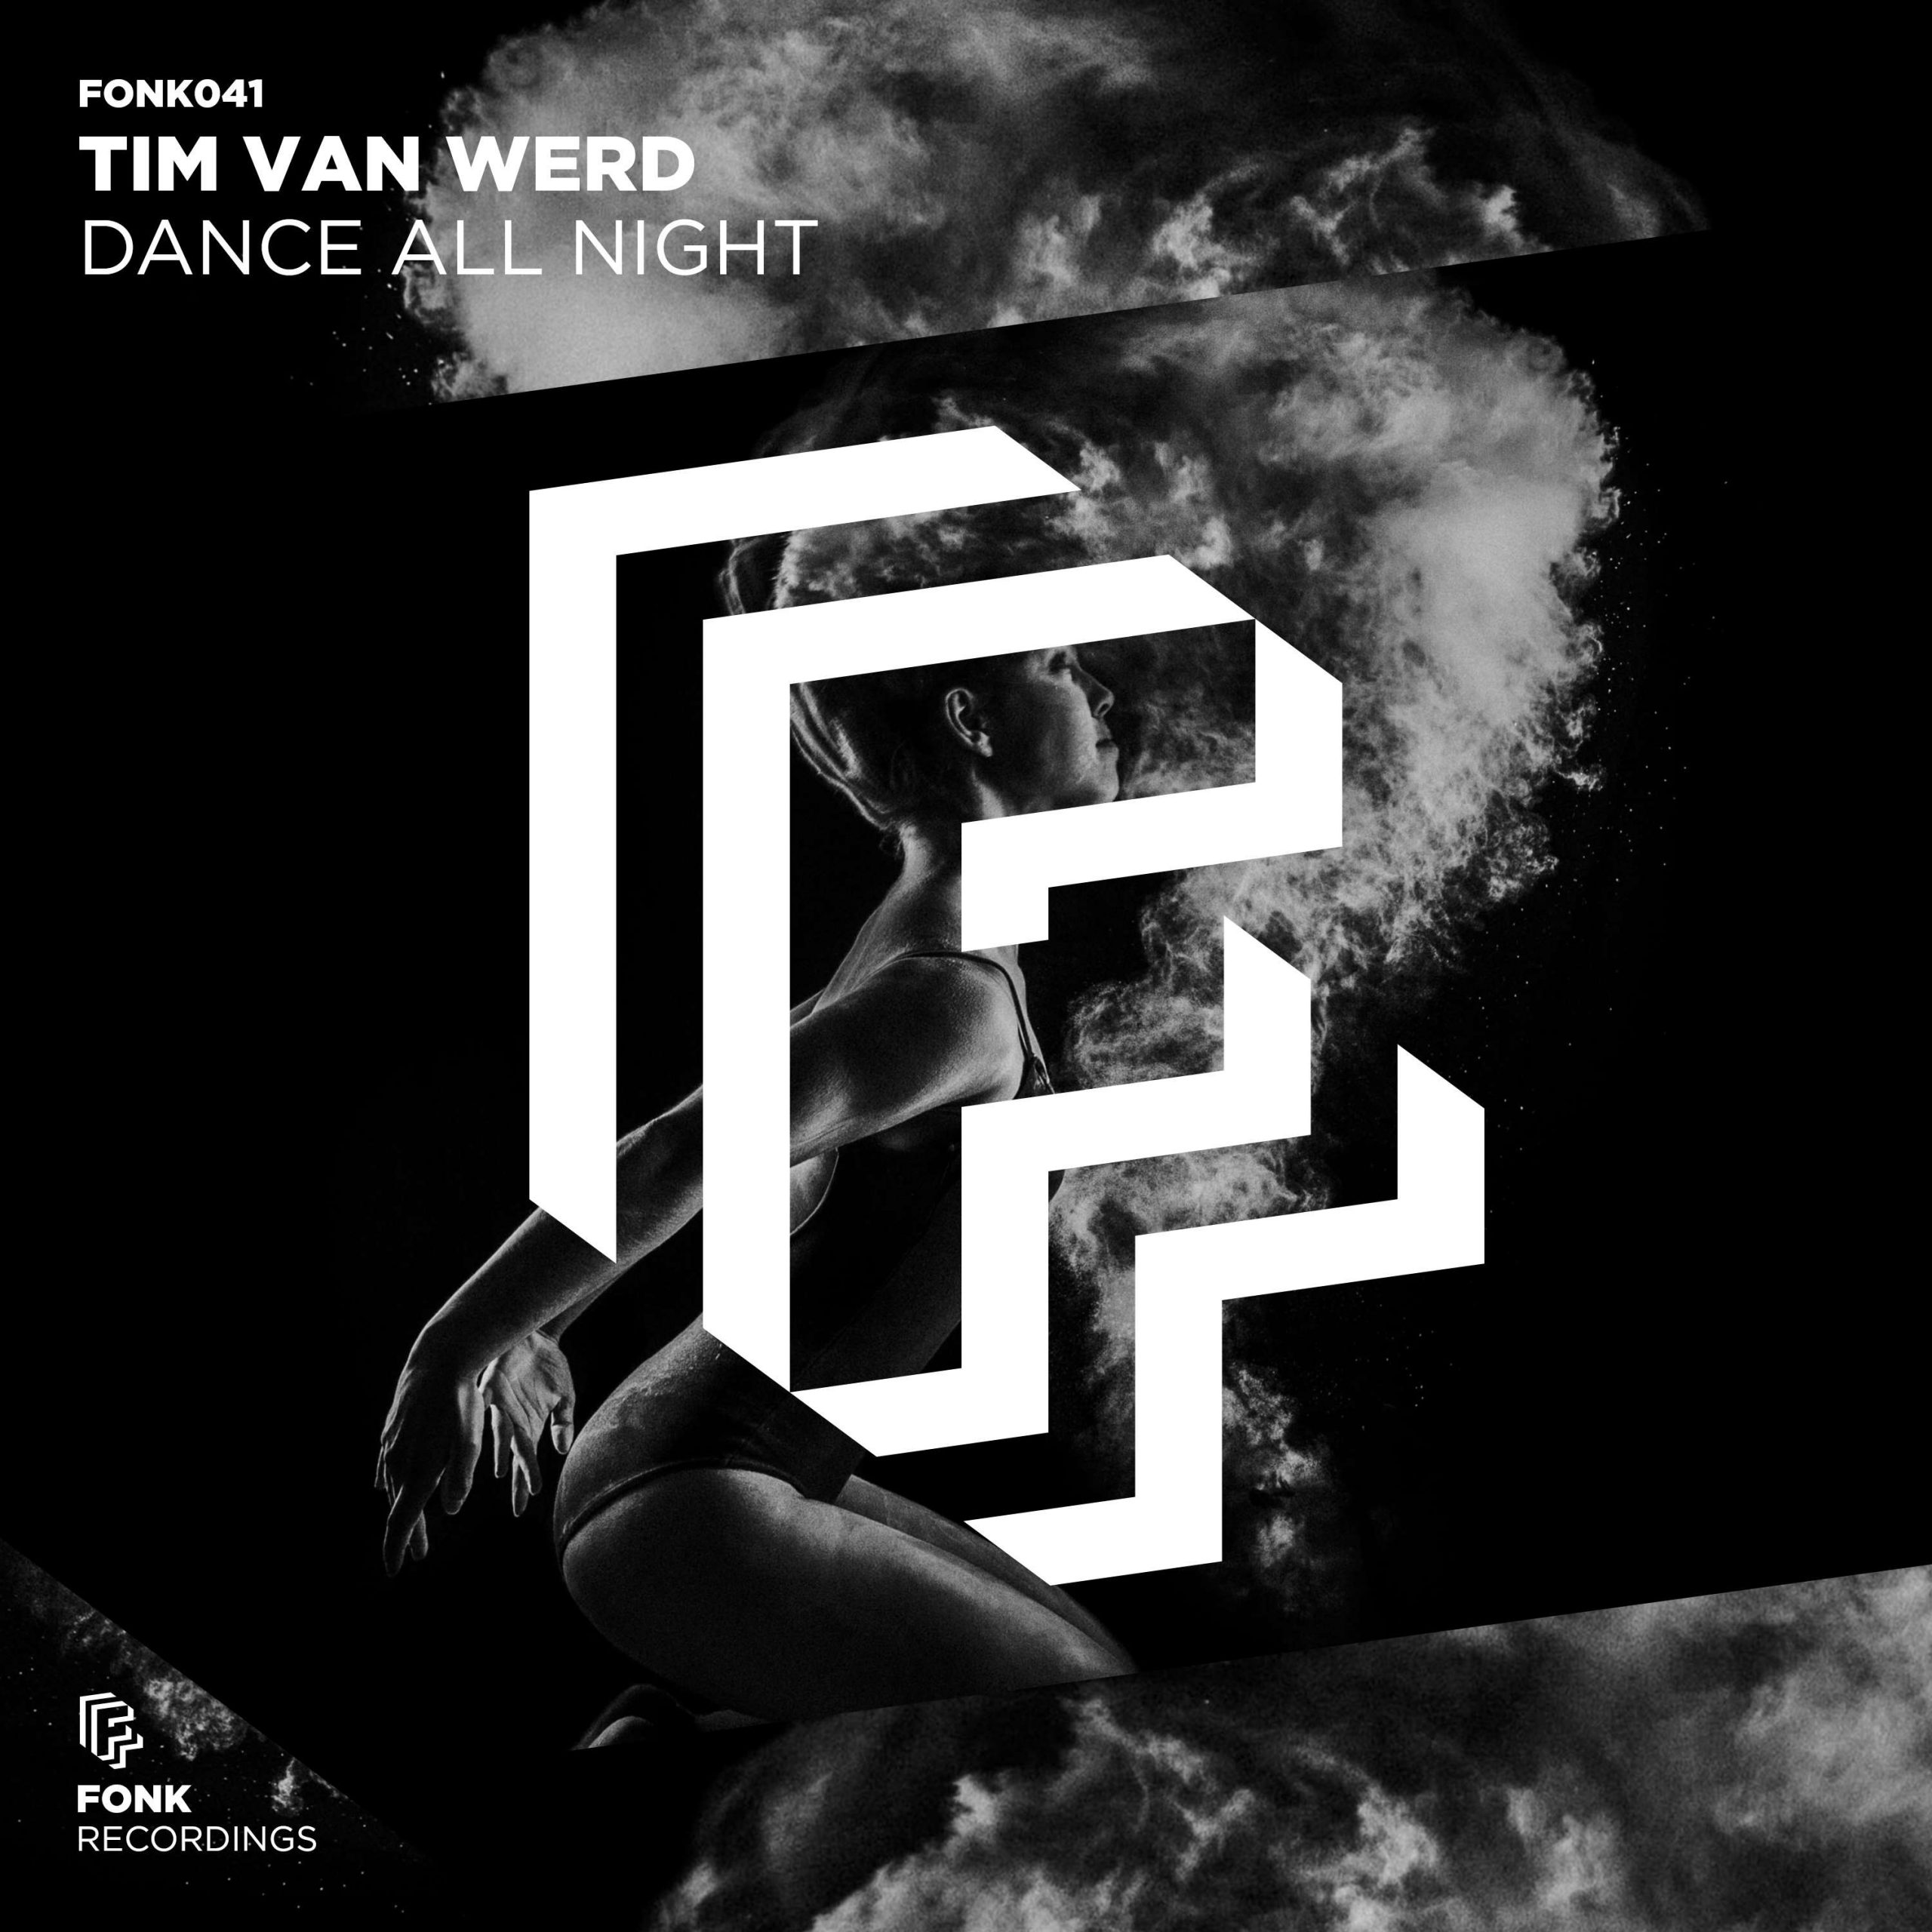 Tim van Werd - Dance All Night